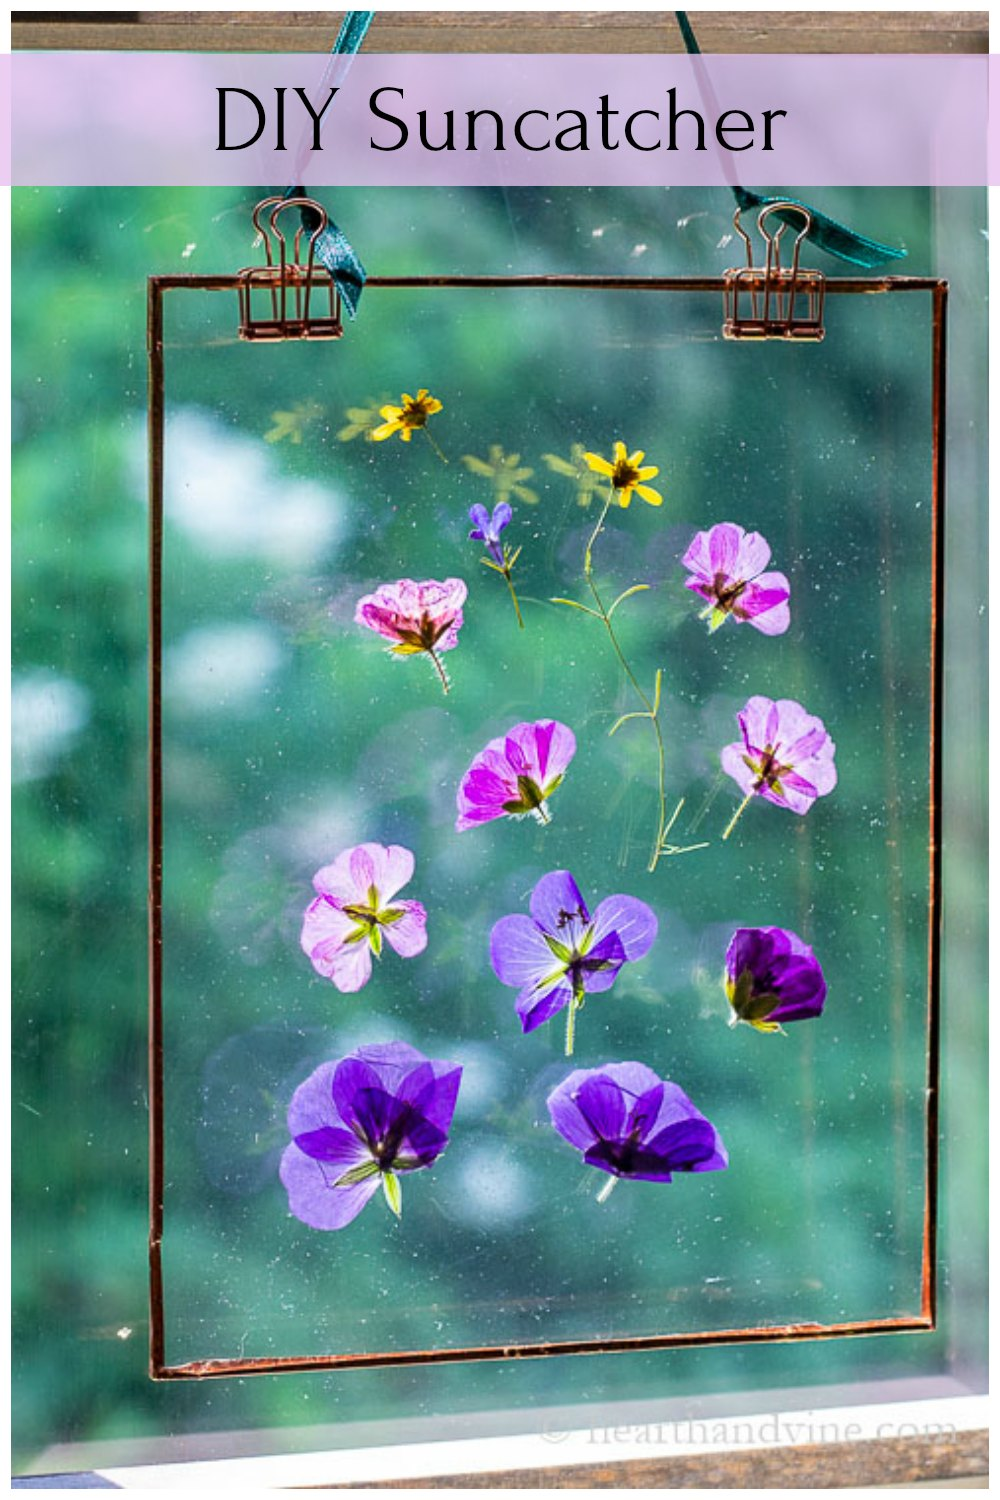 Pressed flower suncatcher in window